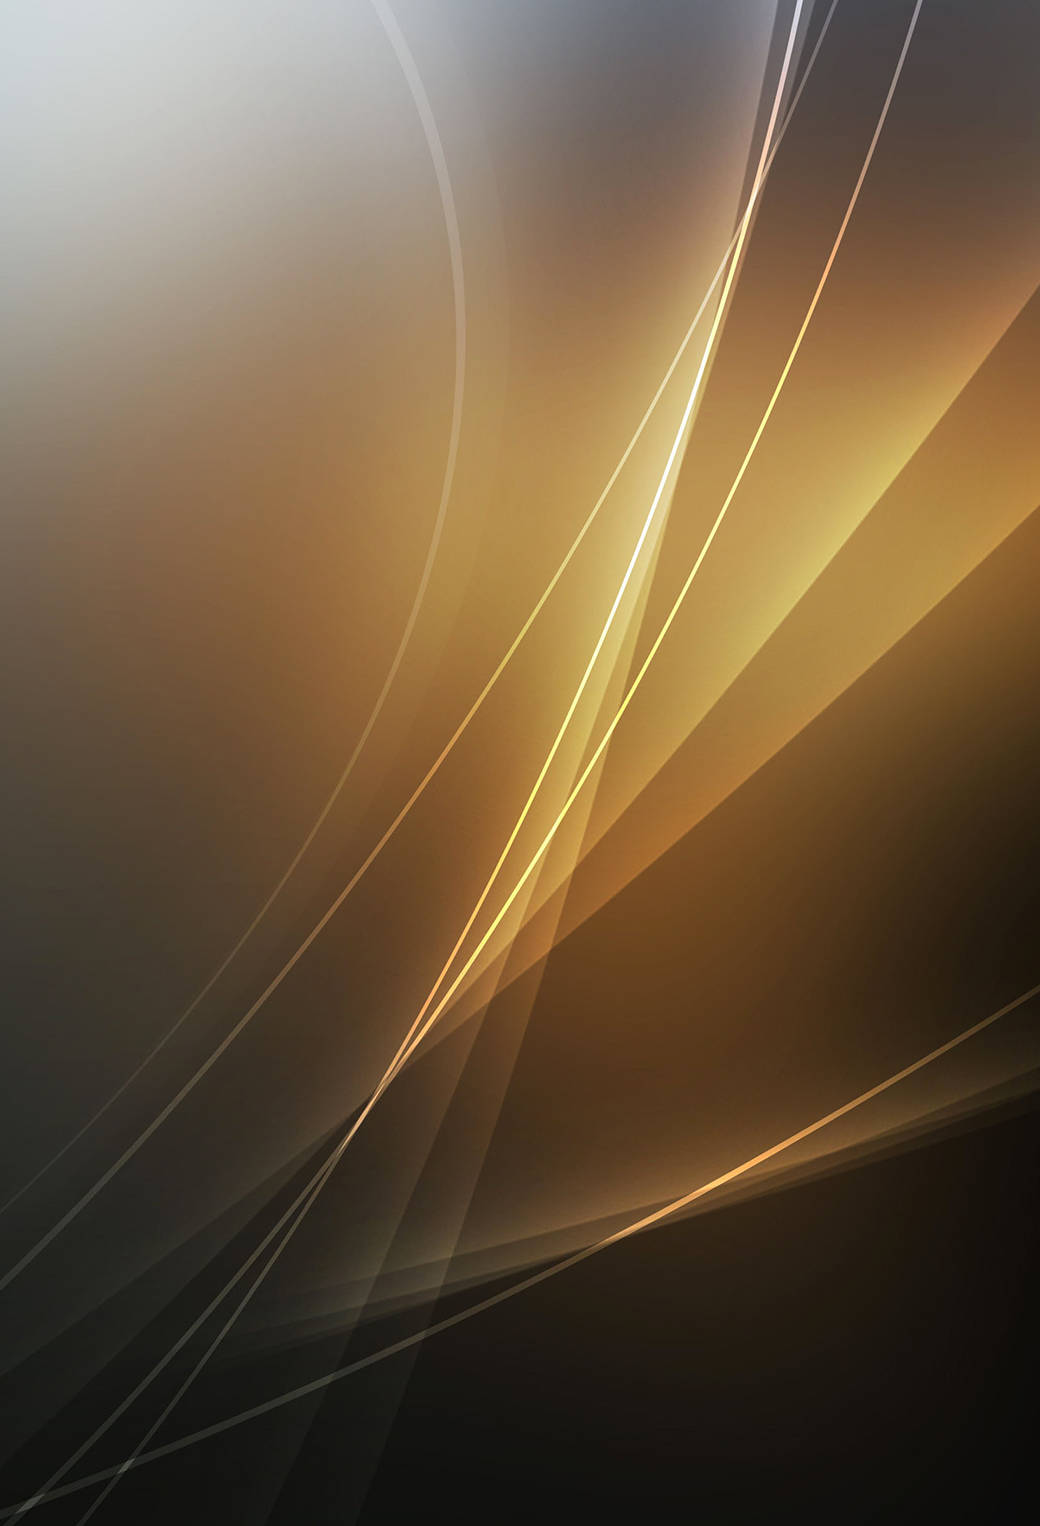 Light Line 3Wallpapers iPhone Parallax Light Line